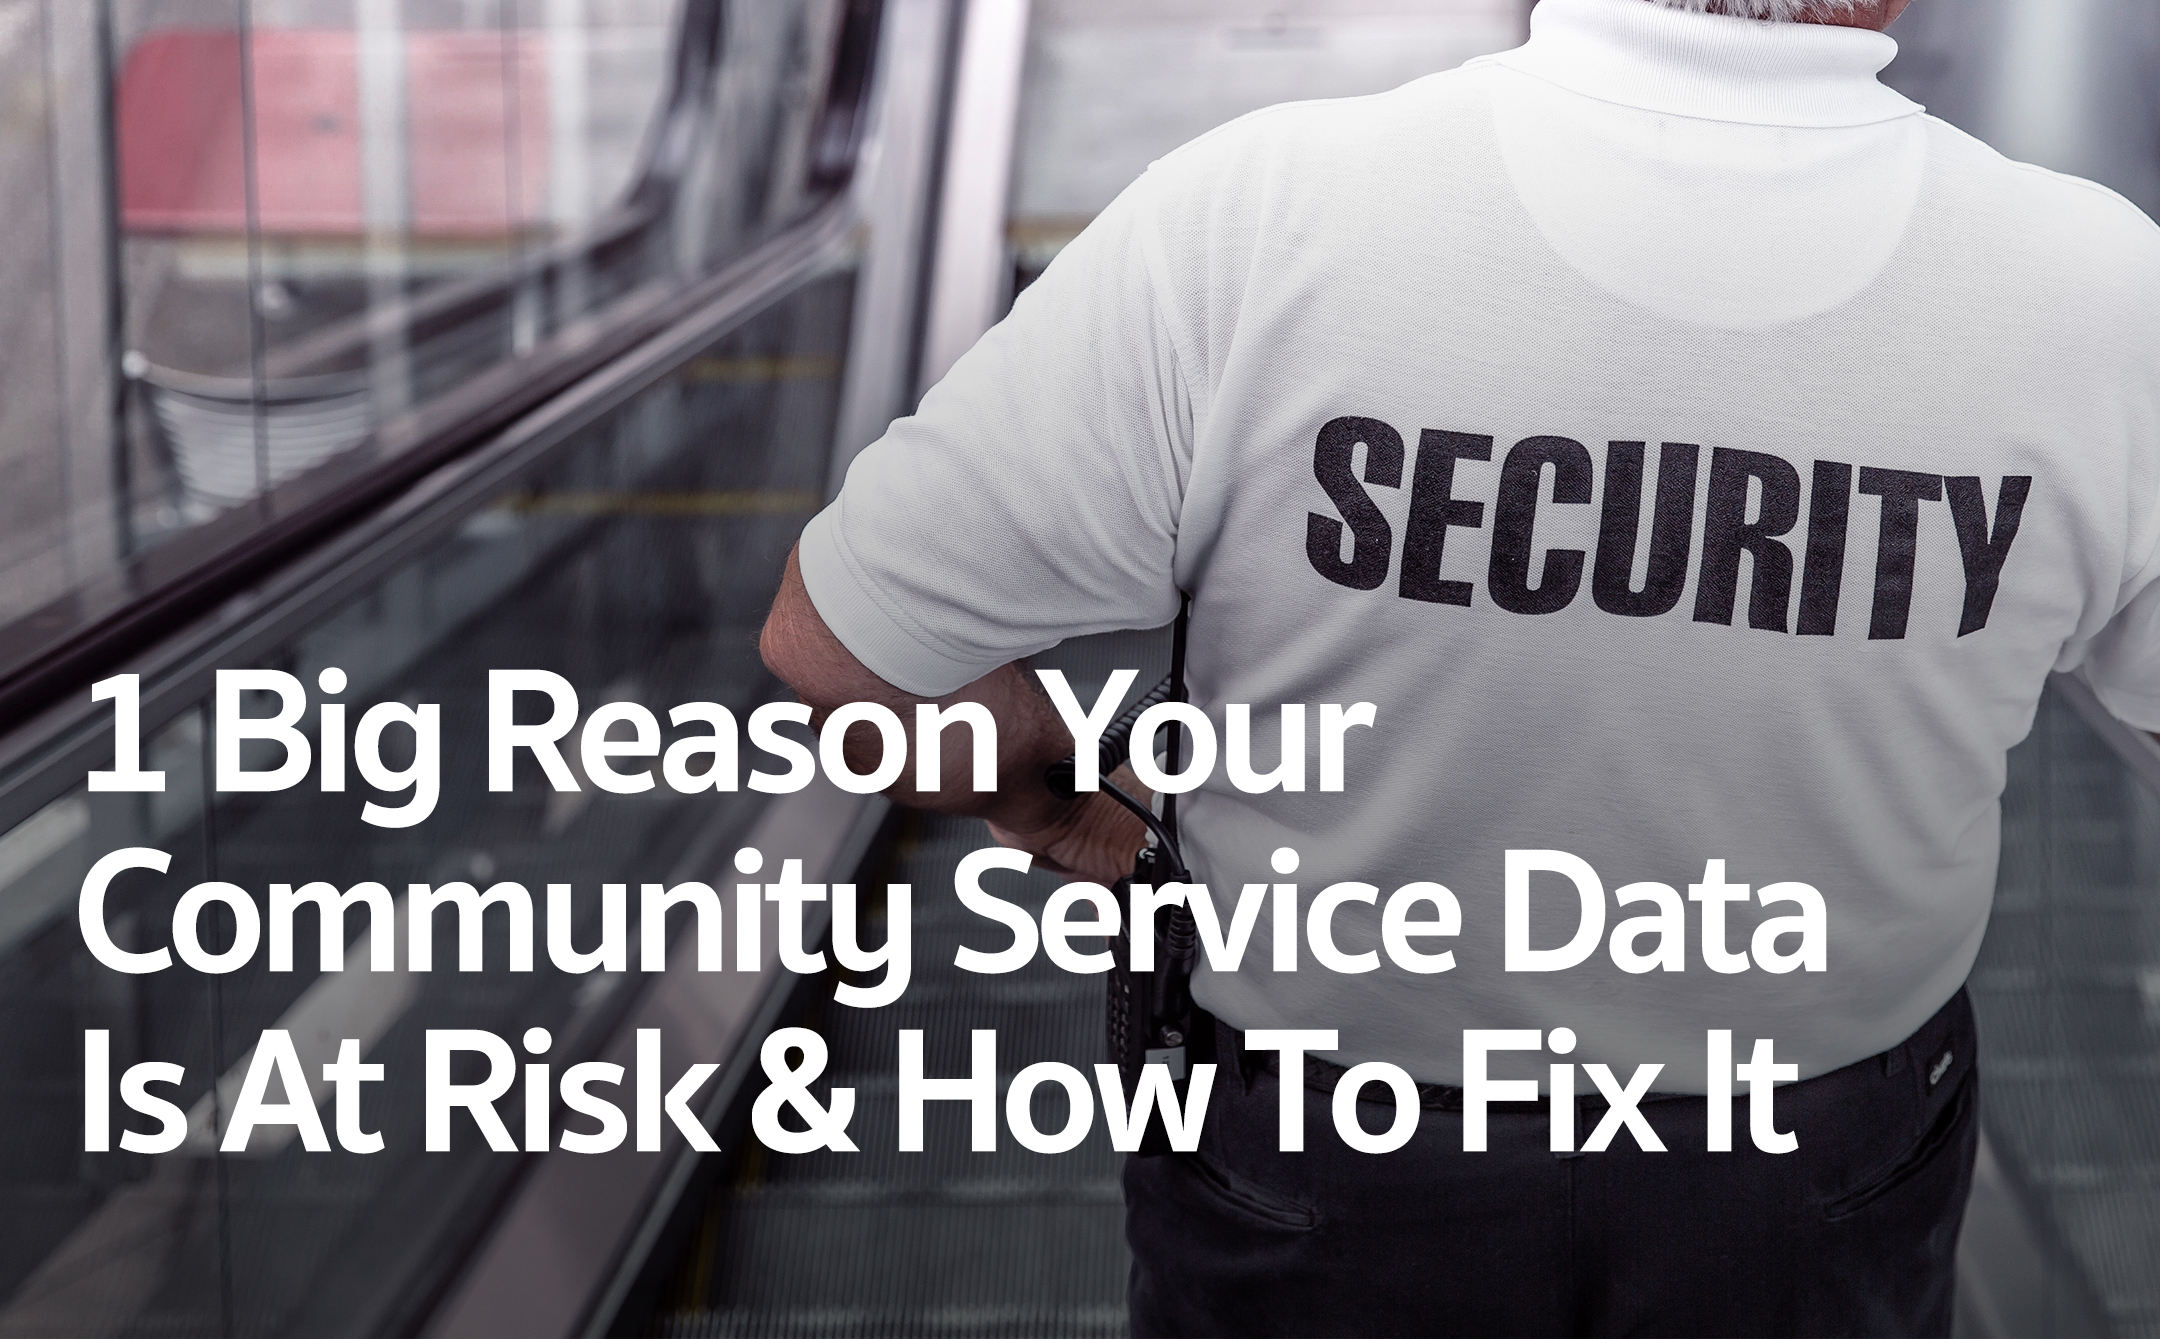 Protect Your Community Service Data